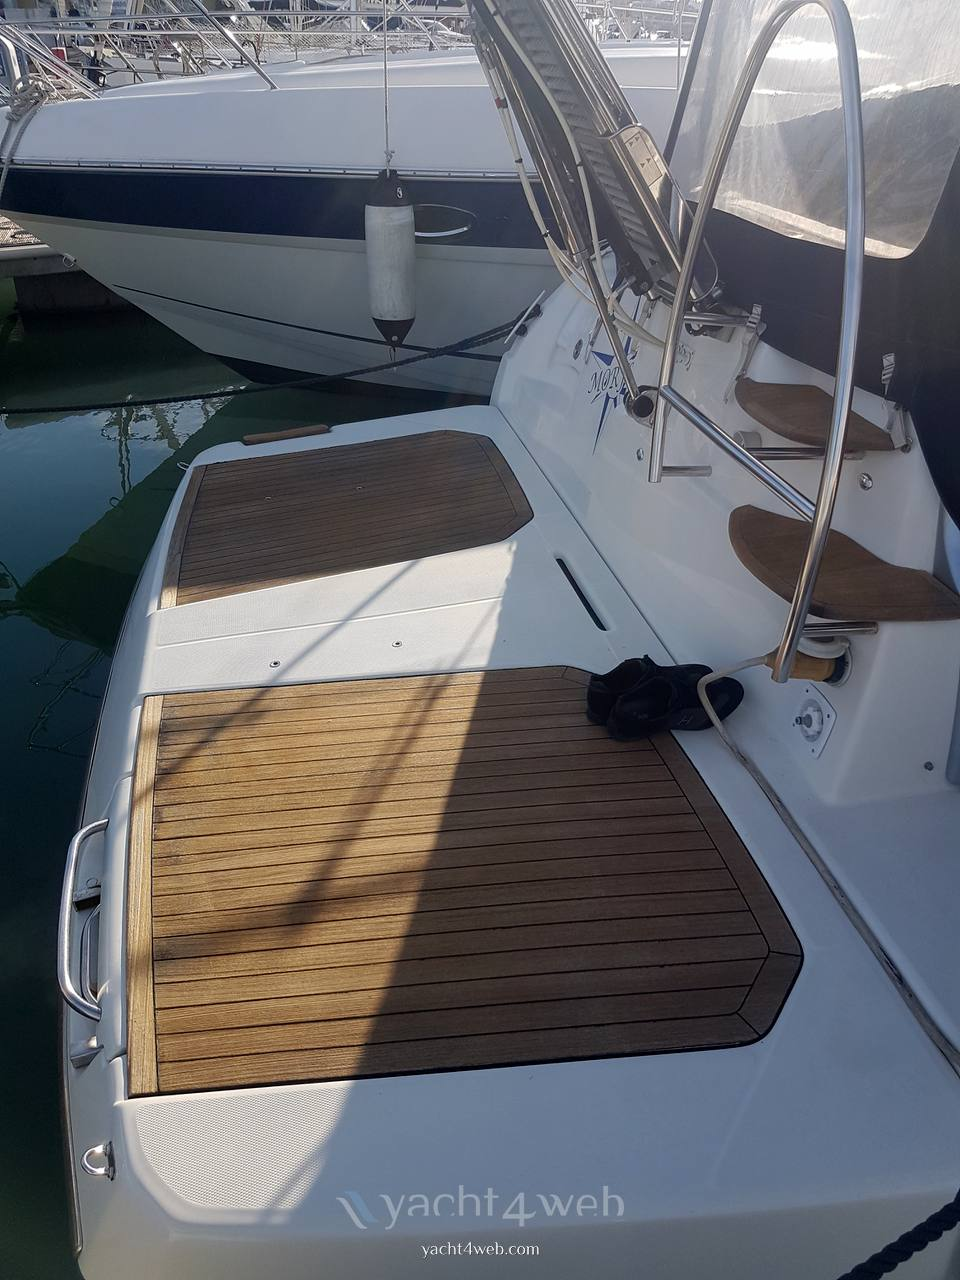 CRANCHI Zaffiro 36 Motor boat used for sale